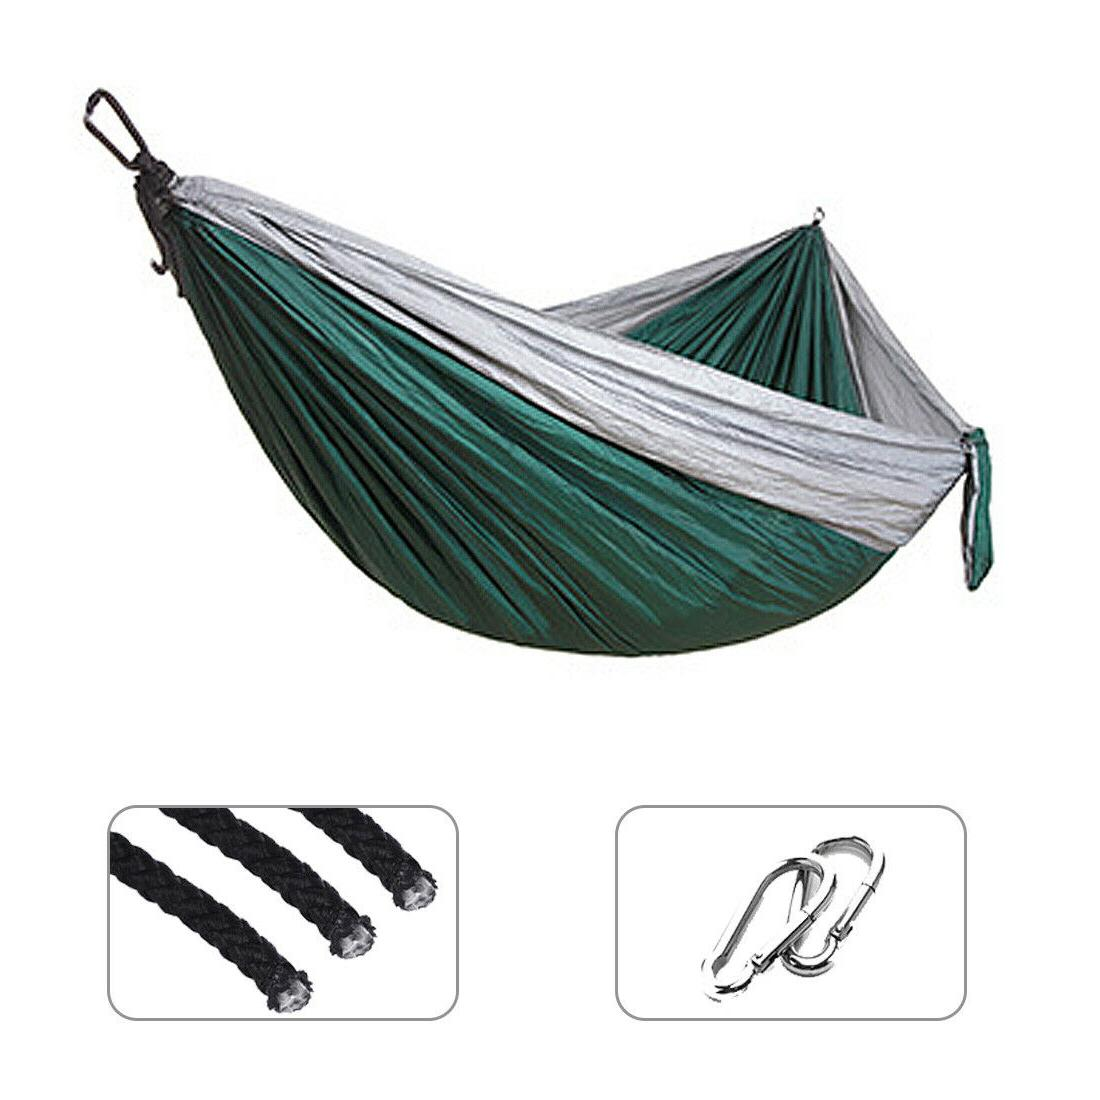 double outdoor hammock swing bed portable parachute